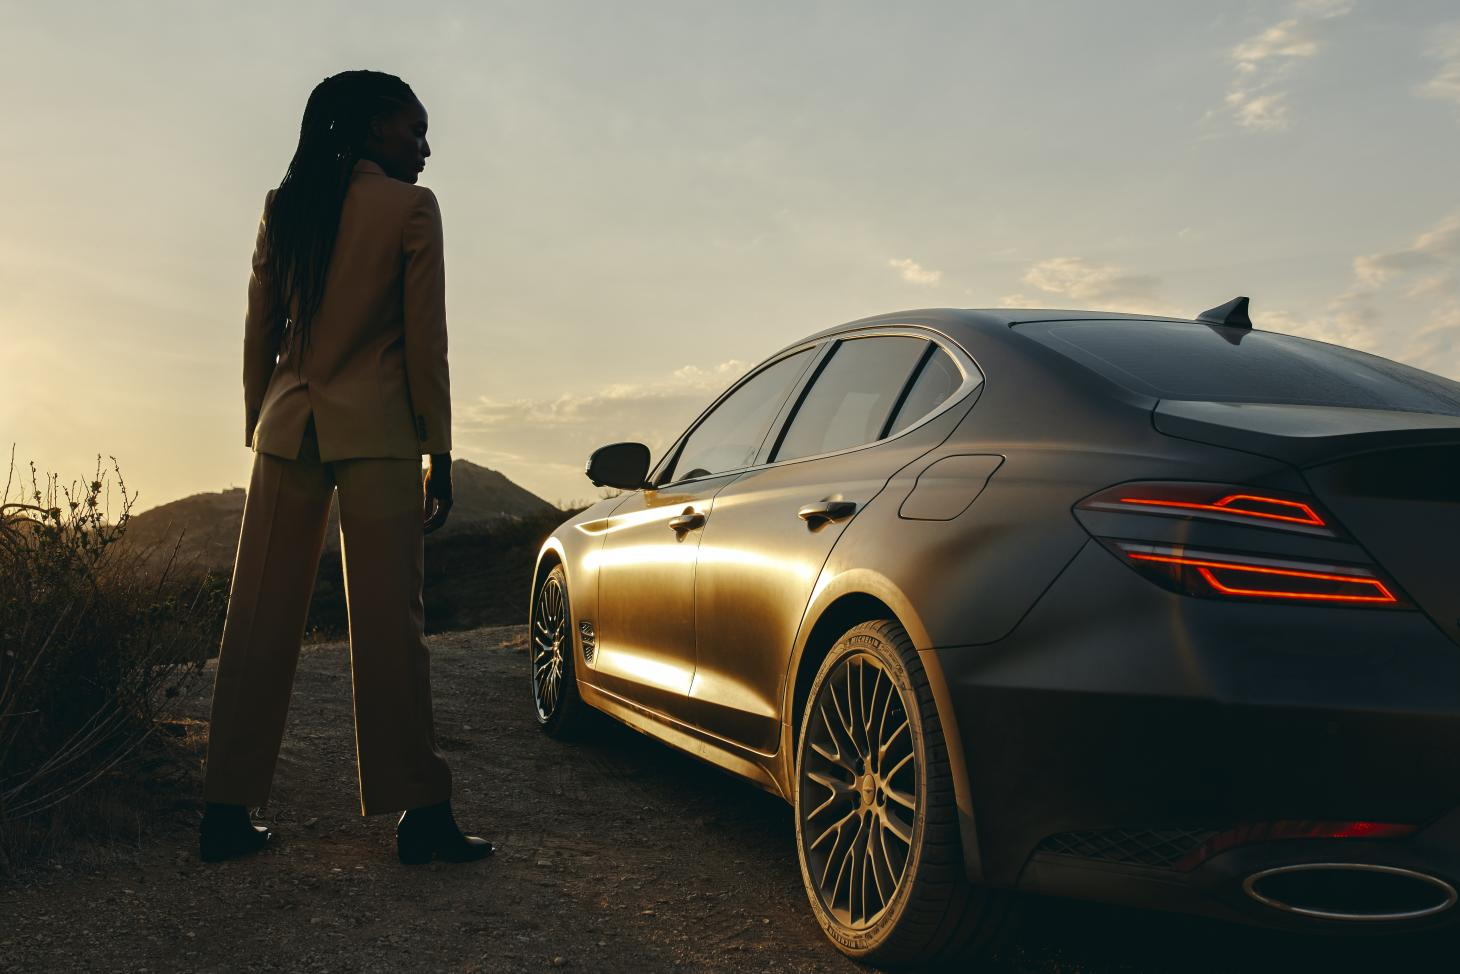 Genesis G70 car exterior image at sunset with woman standing to left of vehicle